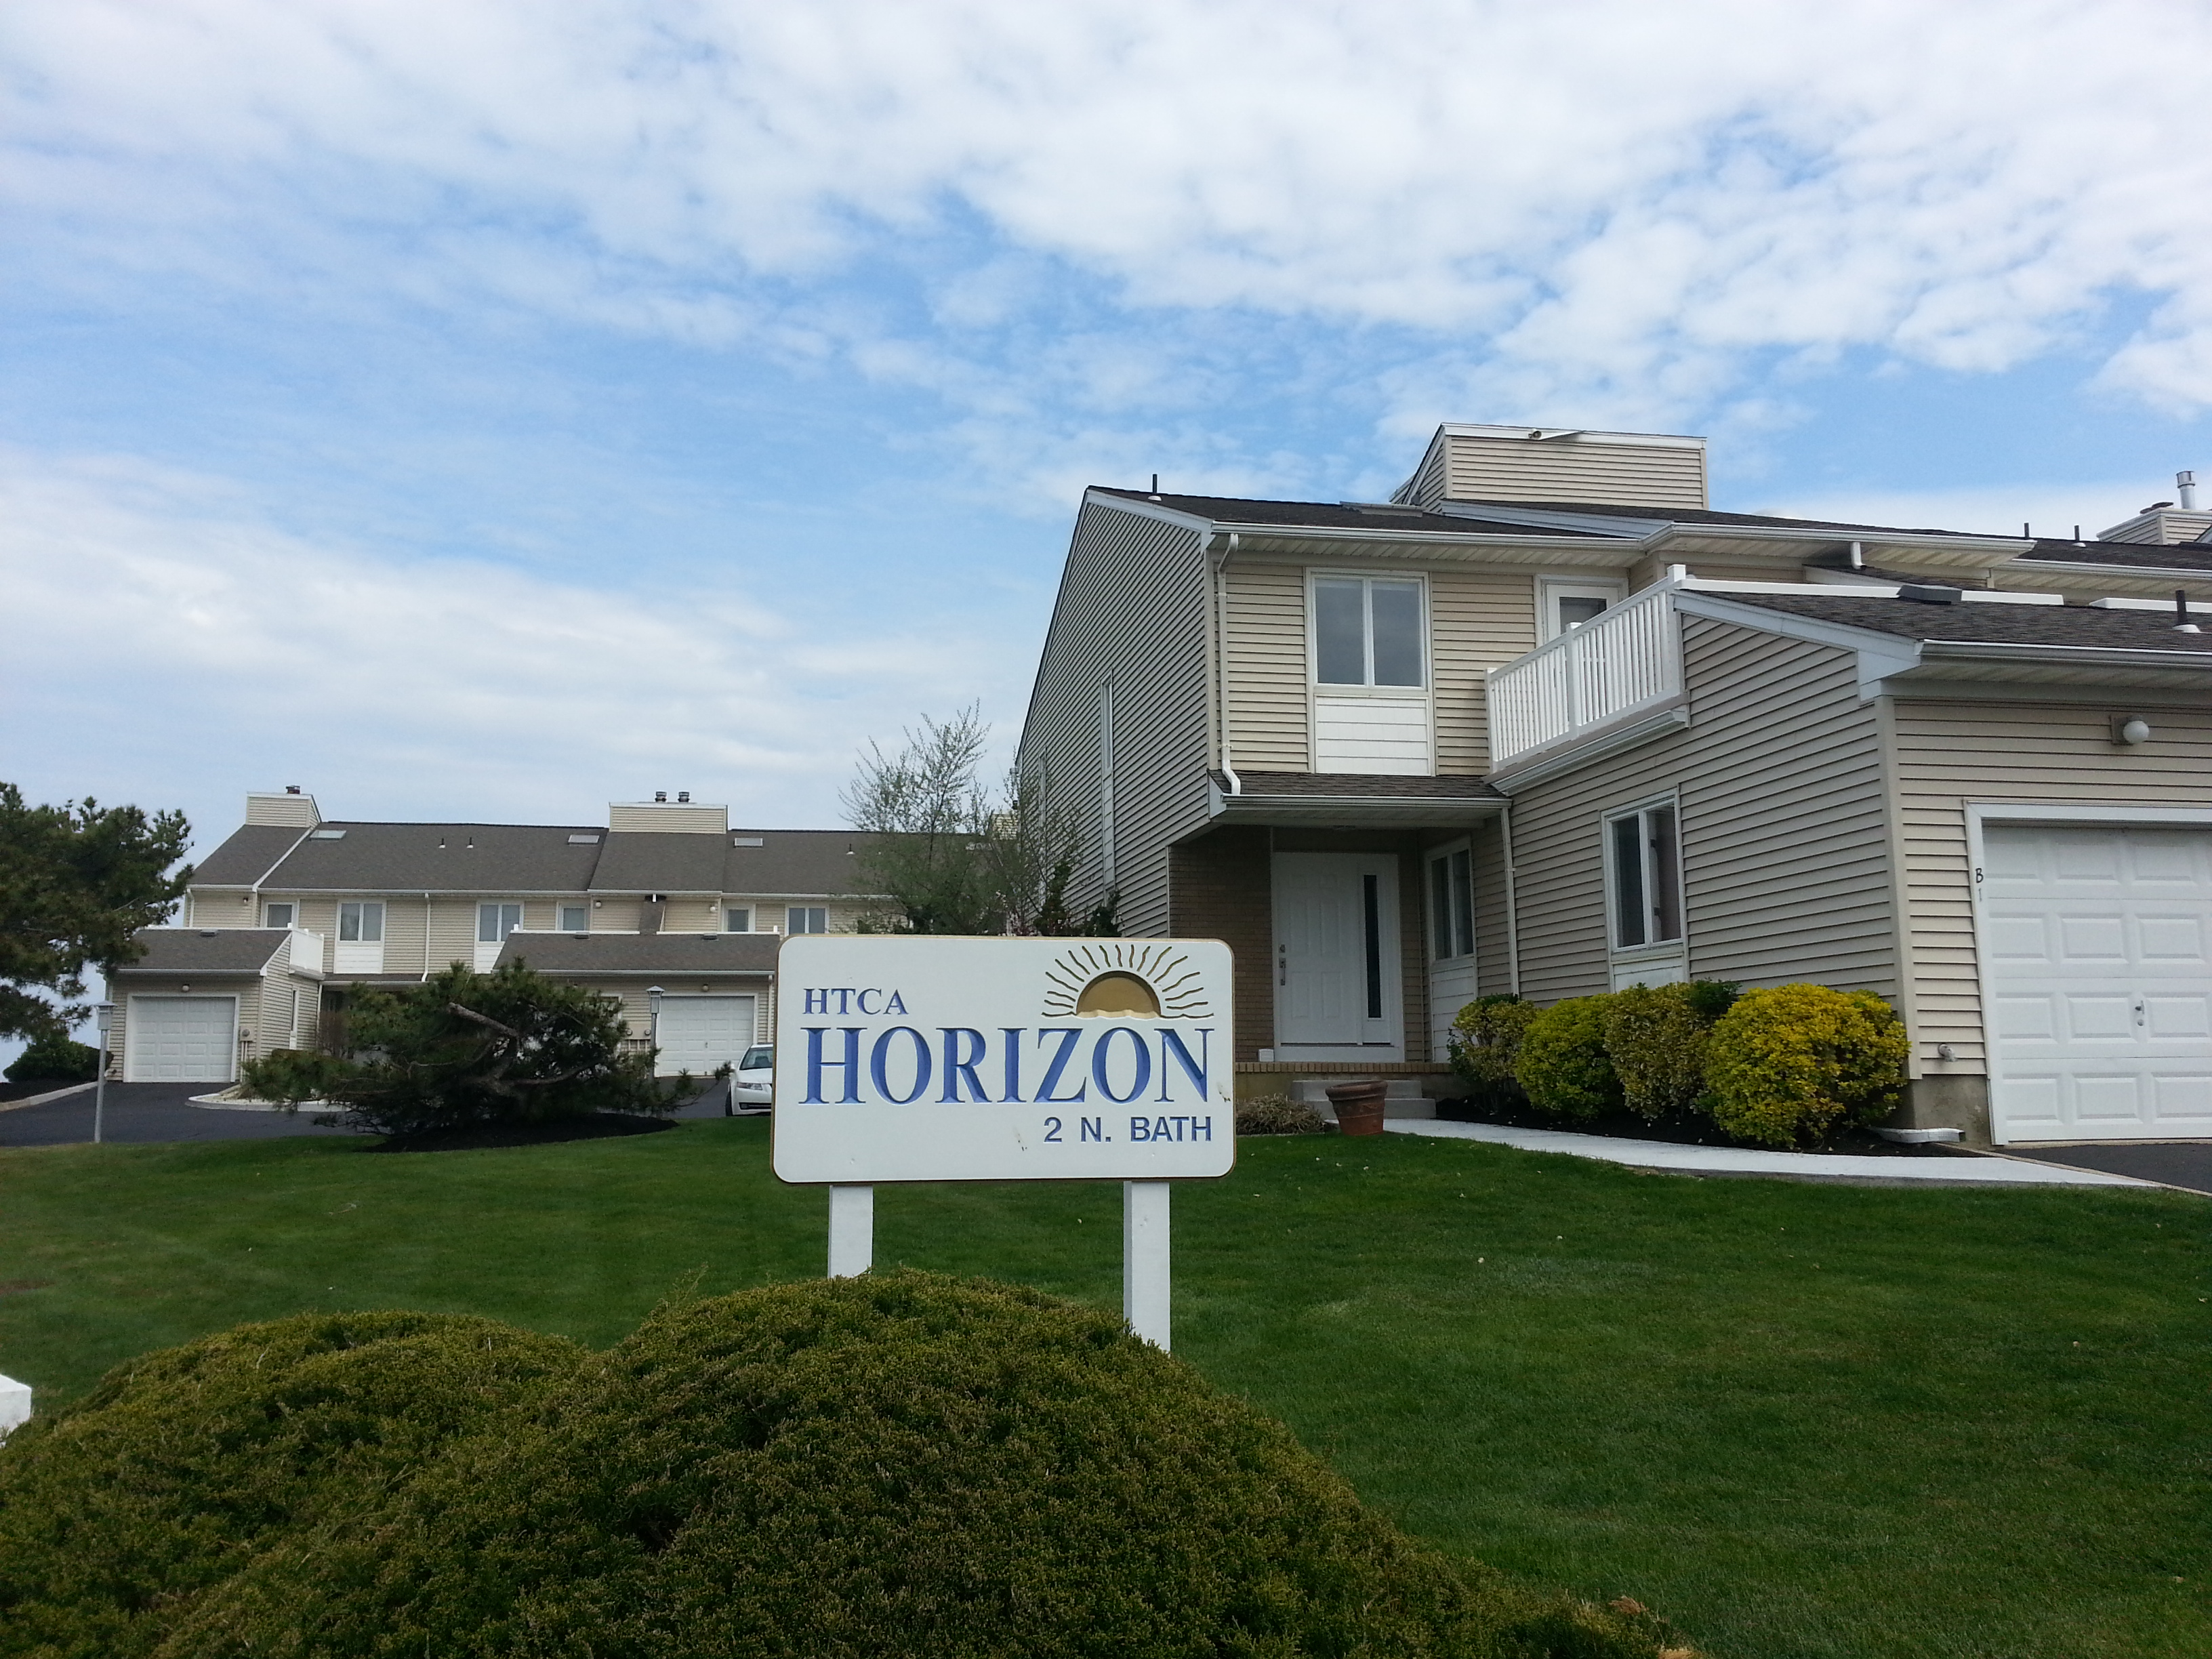 Horizon House is located at the intersection of N. Bath Ave and Ocean Blvd right on the boardwalk